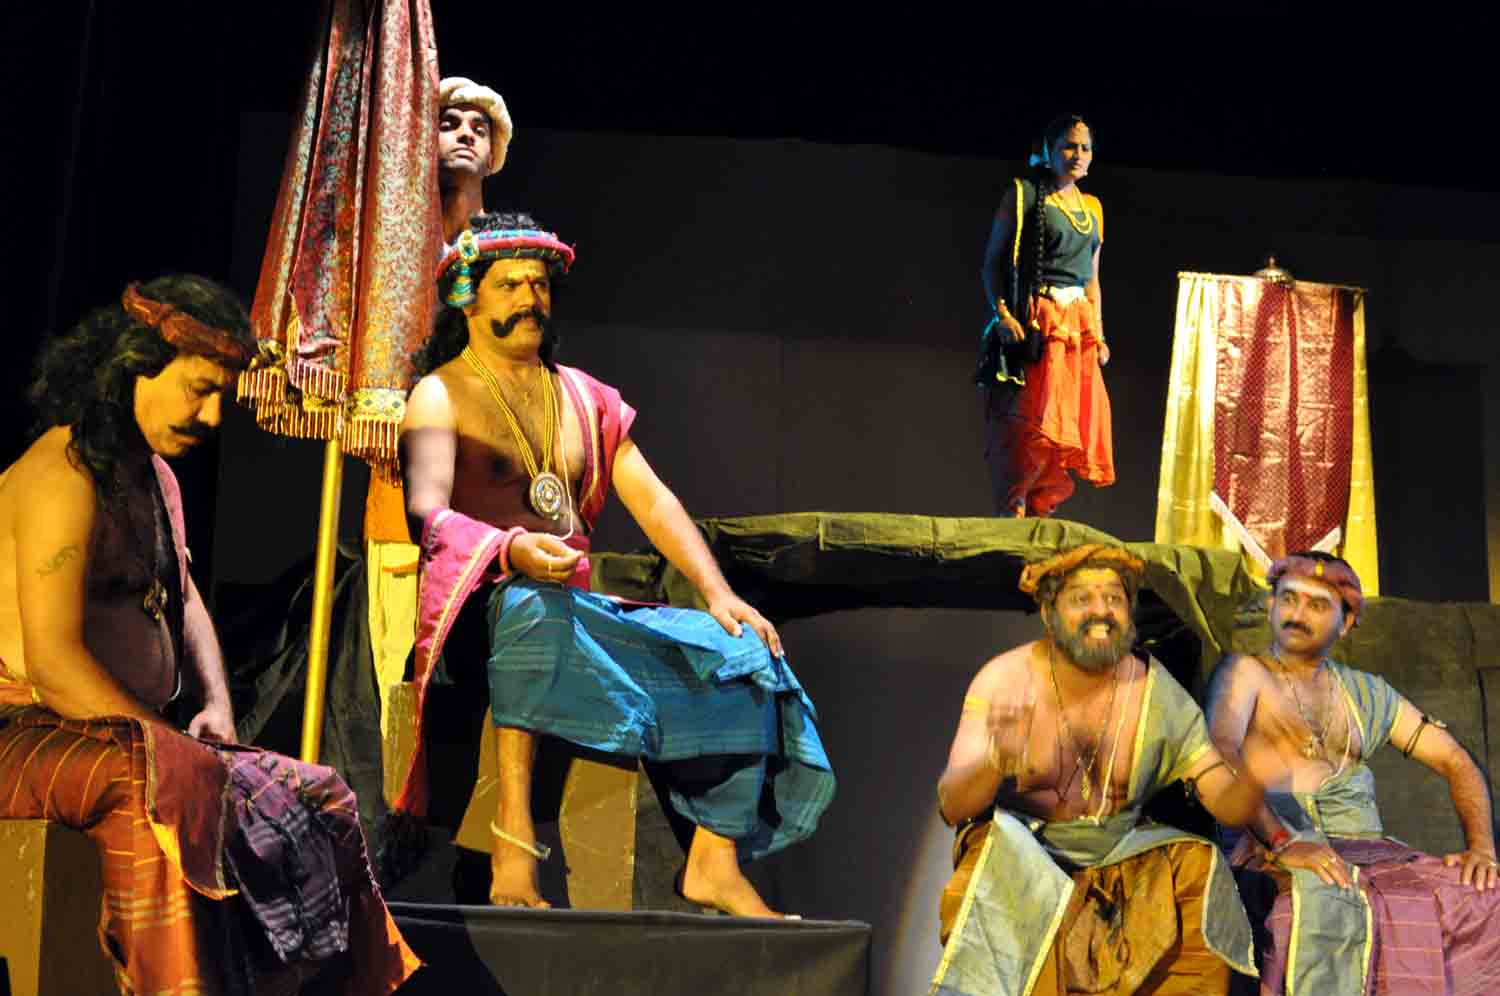 play analysis shakuntala by kalidasa Play analysis - shakuntala by kalidasa a story of gods, nymphs, ancient indian mythology, spells and love, the romantic comedy shakuntala by.